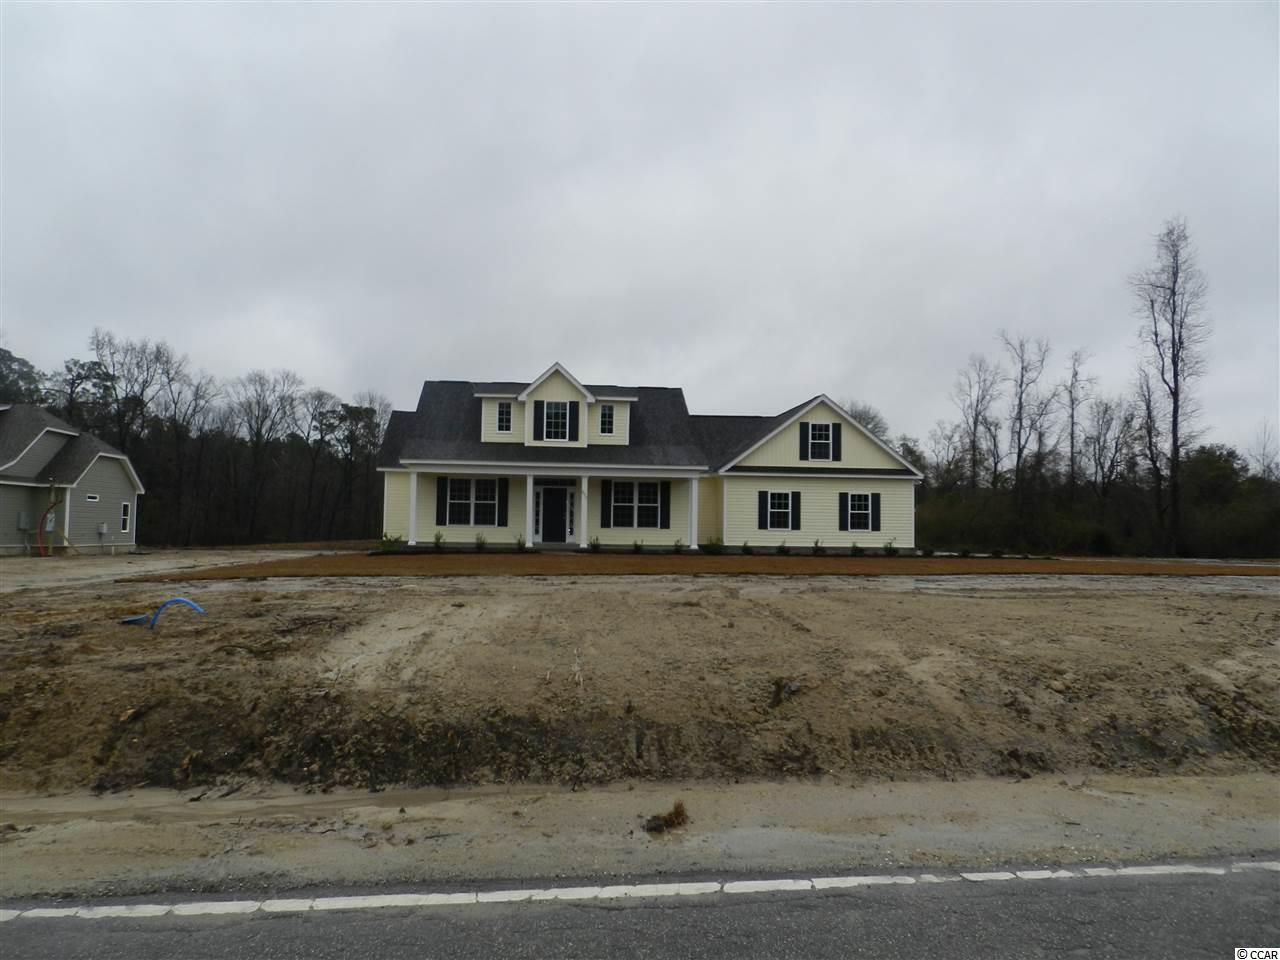 New construction! This beautiful three bedroom, two full bath custom home on a huge lot, minutes from downtown Conway! Fantastic floor plan with a huge breakfast bar, staggered-height birch cabinetry and stainless appliances in the open kitchen and a formal dining room. The private master retreat is tucked on its own hallway and features a tray ceiling, an oversized walk-in shower, a huge walk-in closet, and a linen closet. Two generously sized guest bedrooms and a bath. Photos are of a completed, similar home in another neighborhood and may have different features.